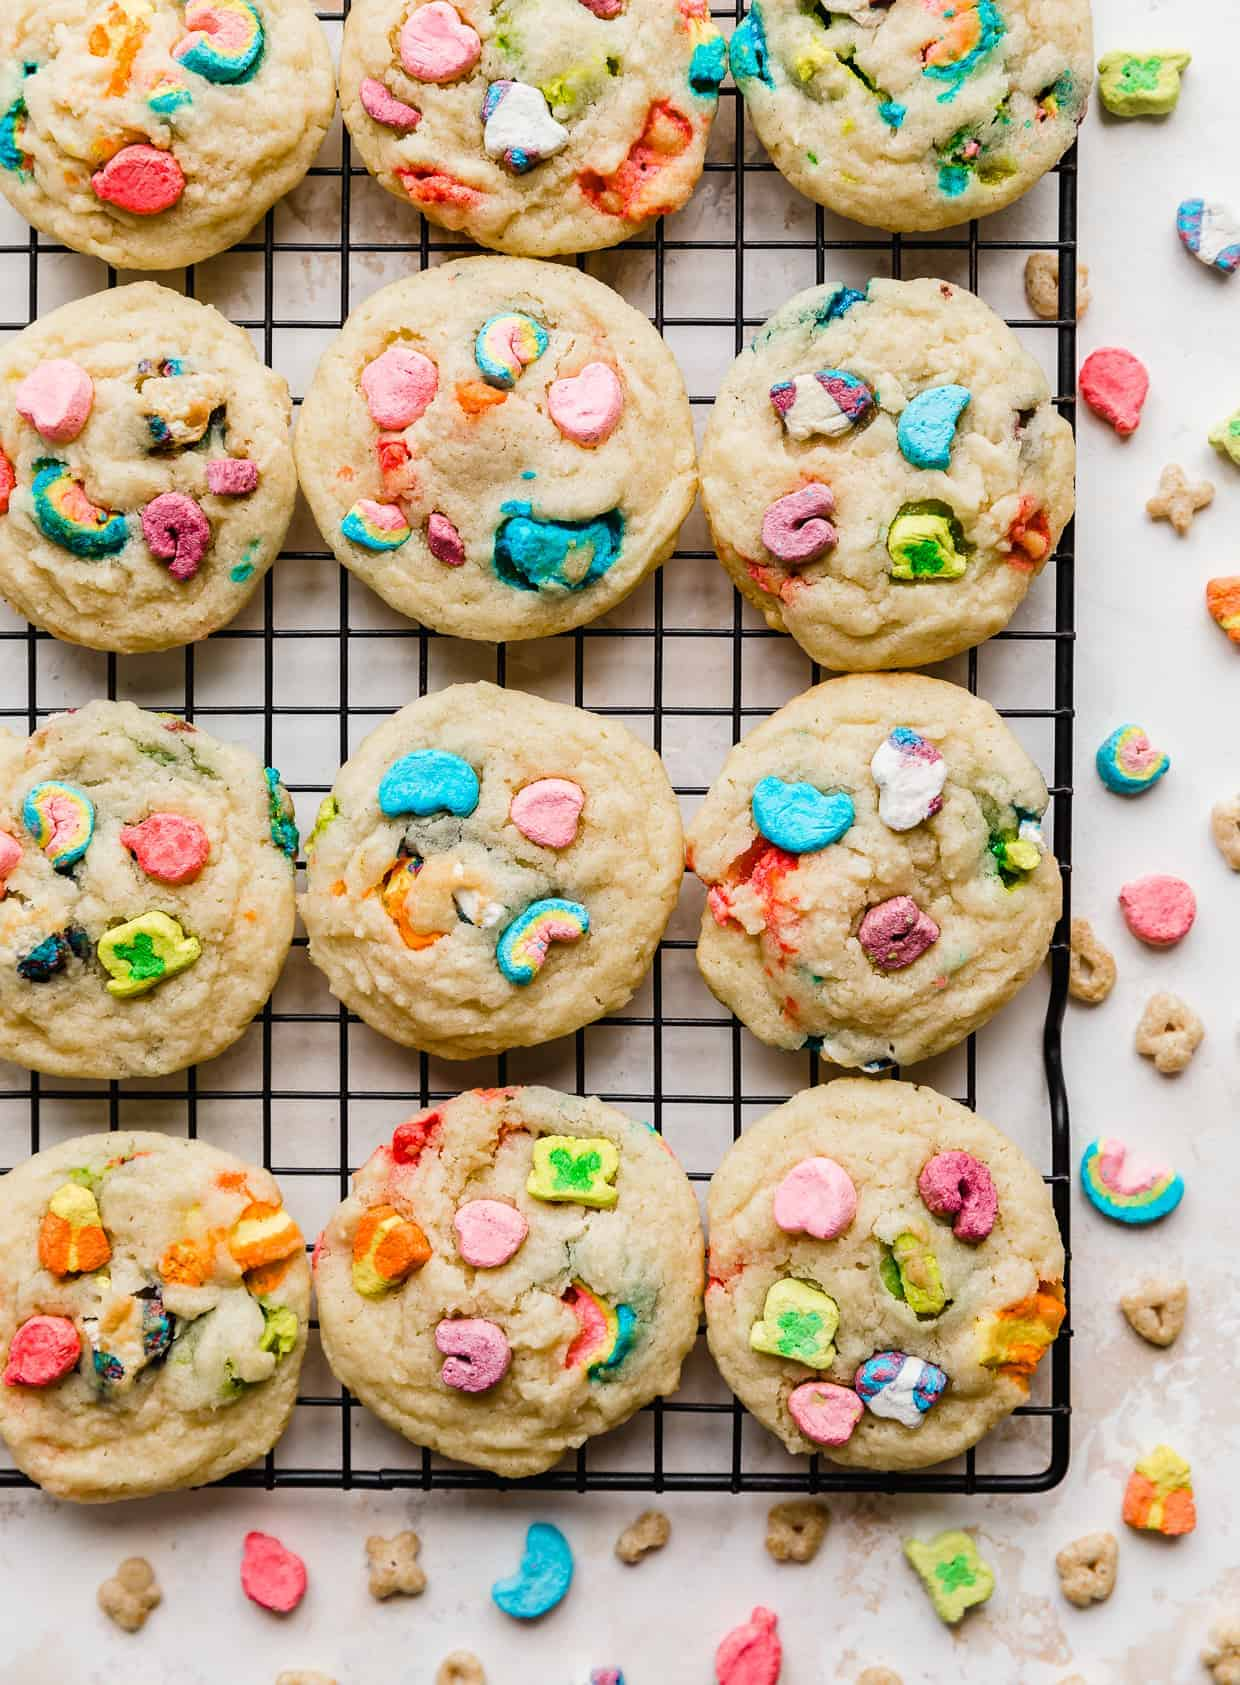 Baked sugar cookies on a black wire rack with lucky charms marshmallows baked into the cookies.